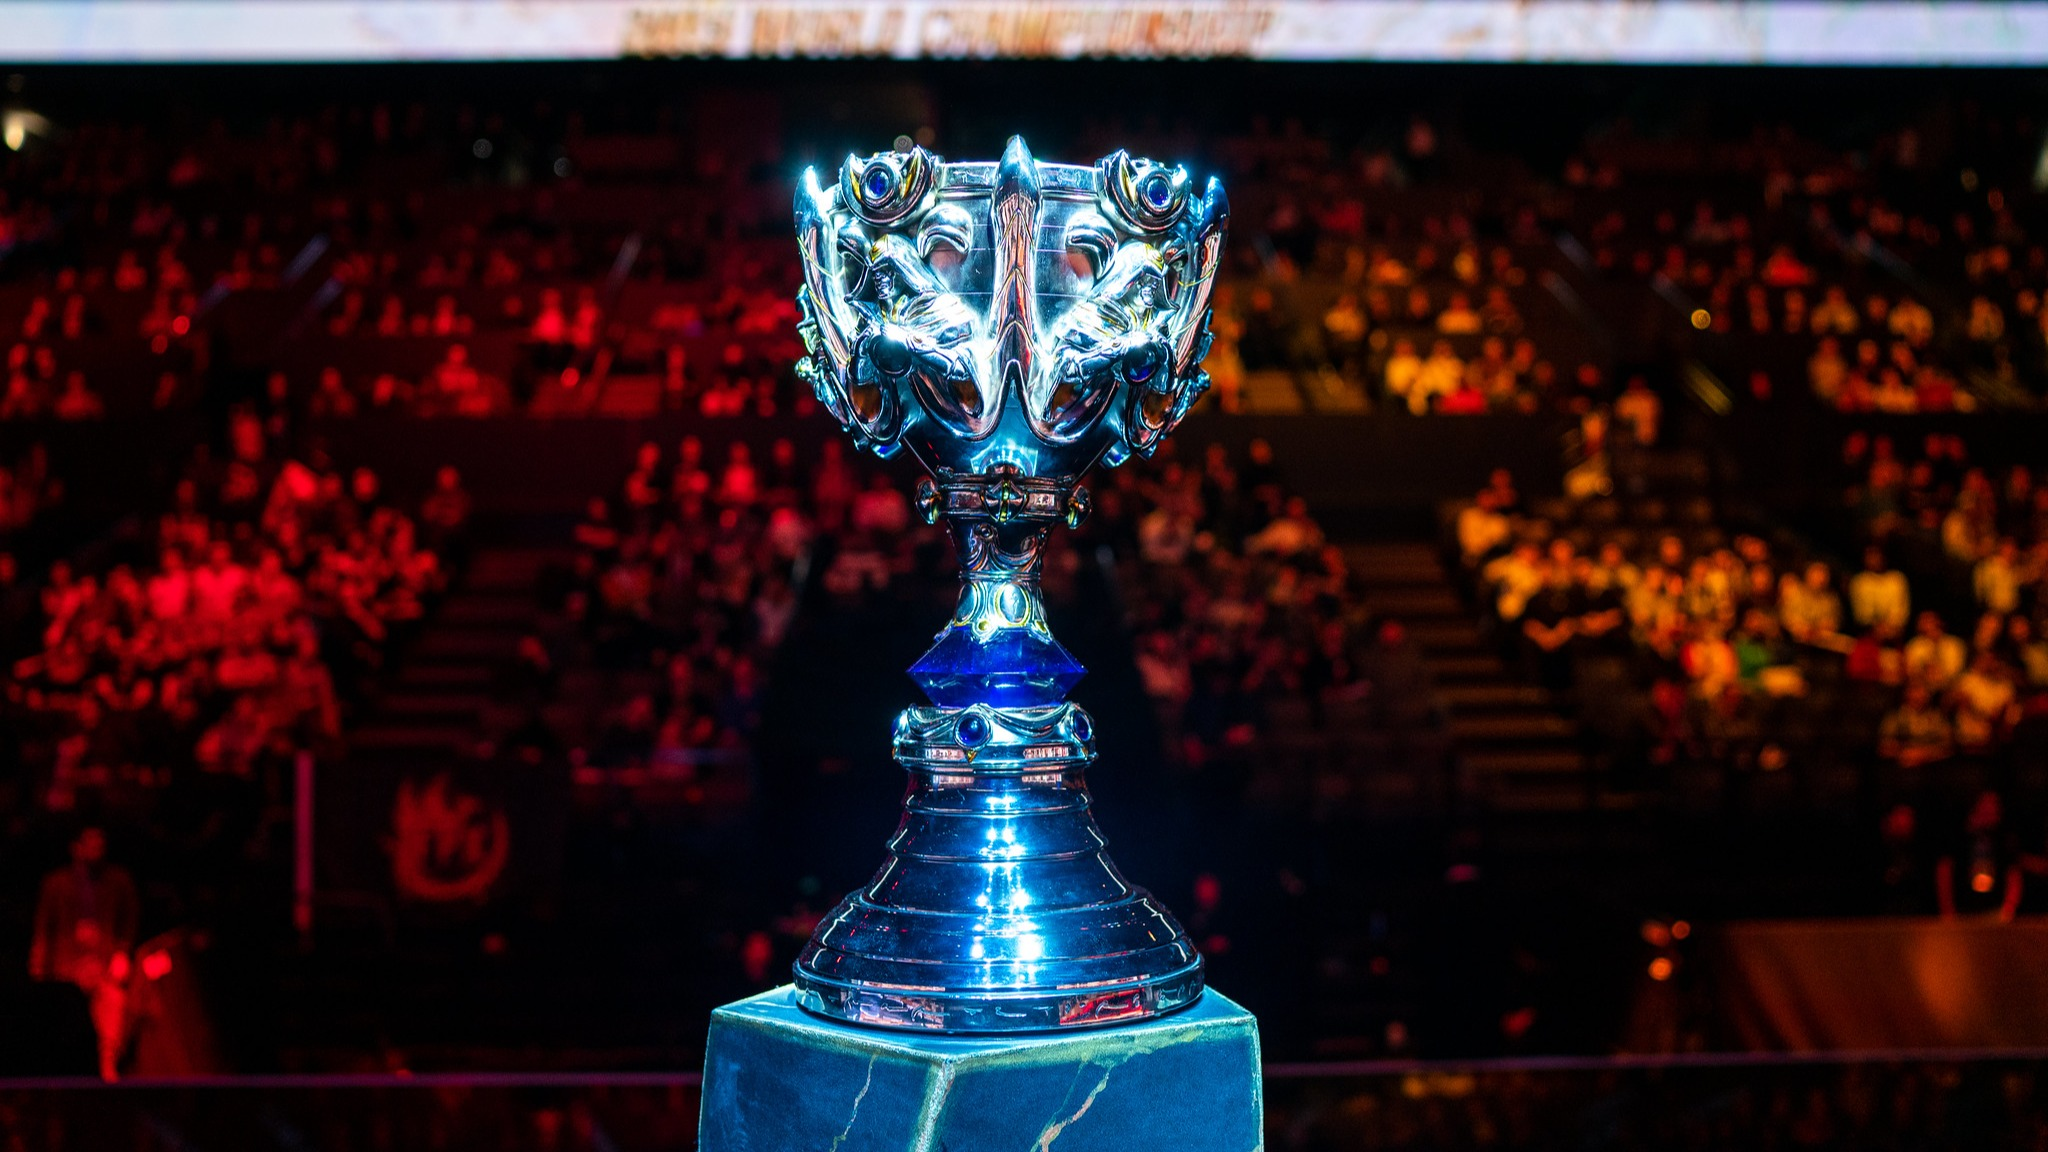 Summoners Cup Worlds 2019